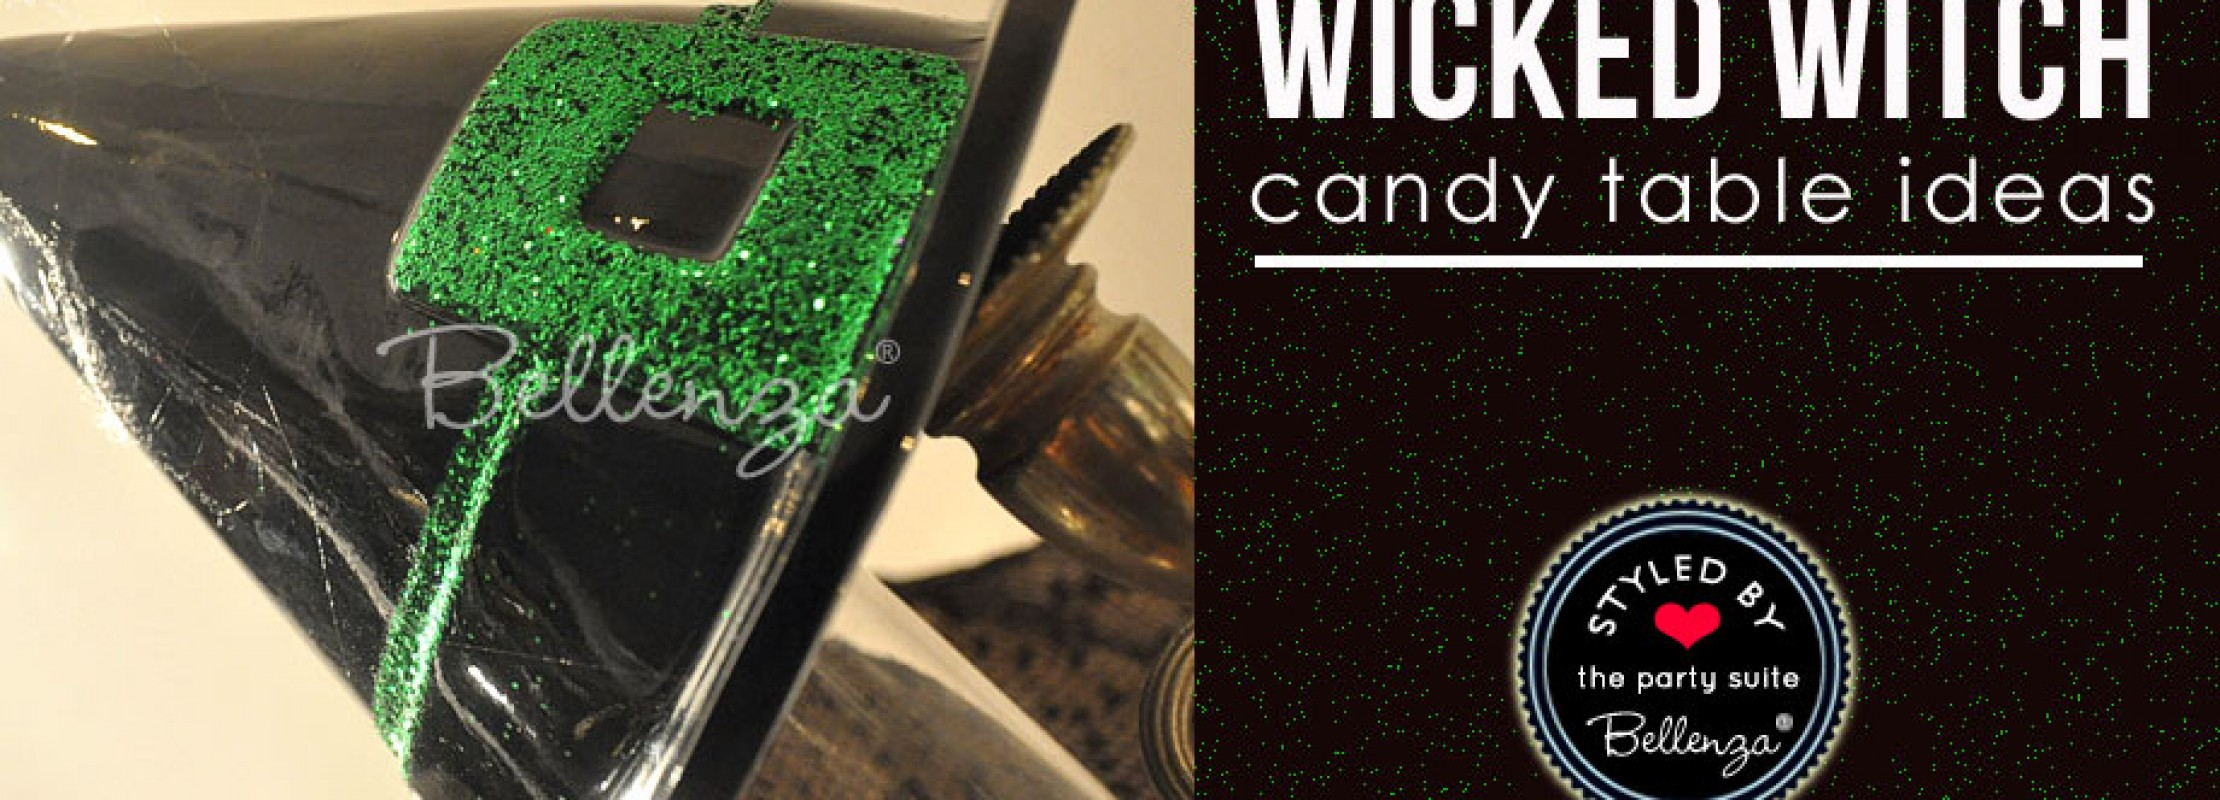 Wicked witch themed candy table